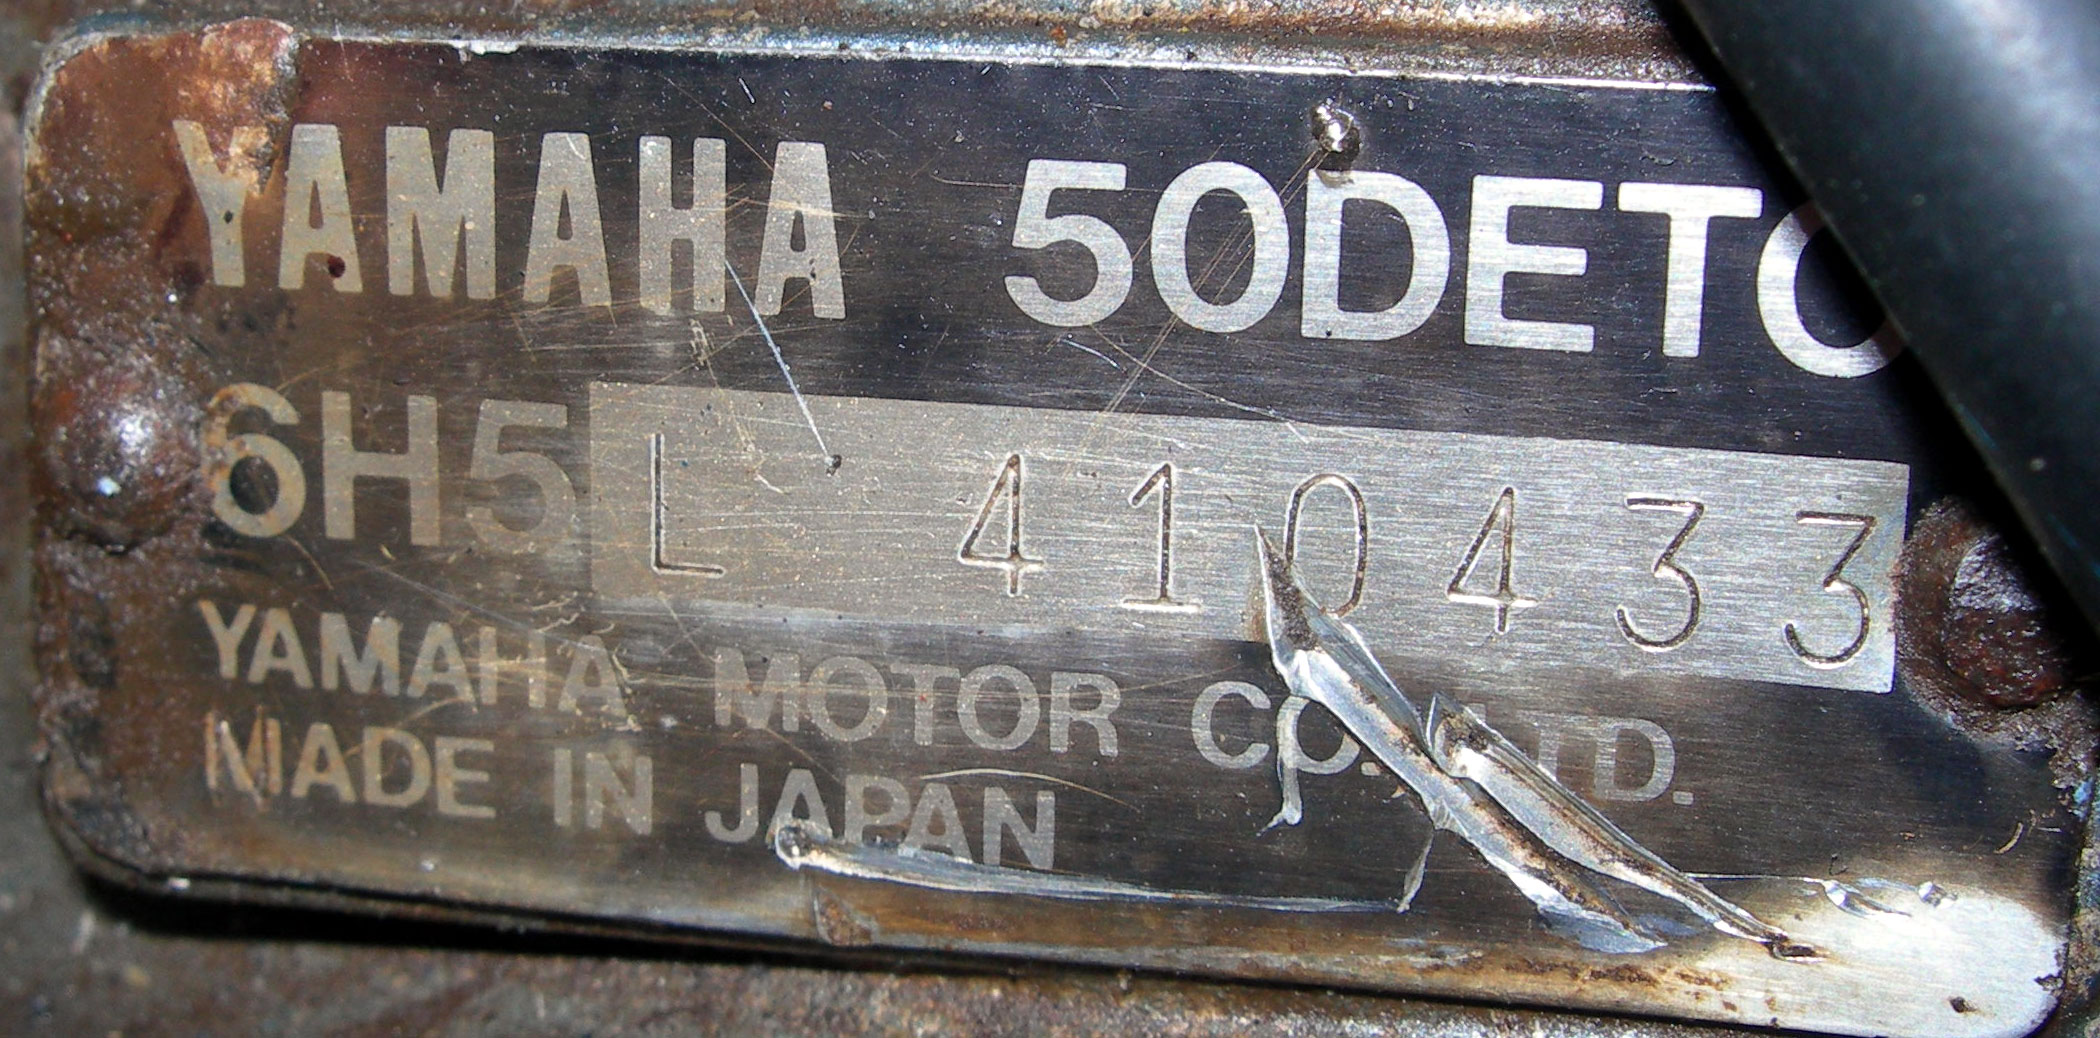 Yamaha outboard motor serial number for Yamaha phone number